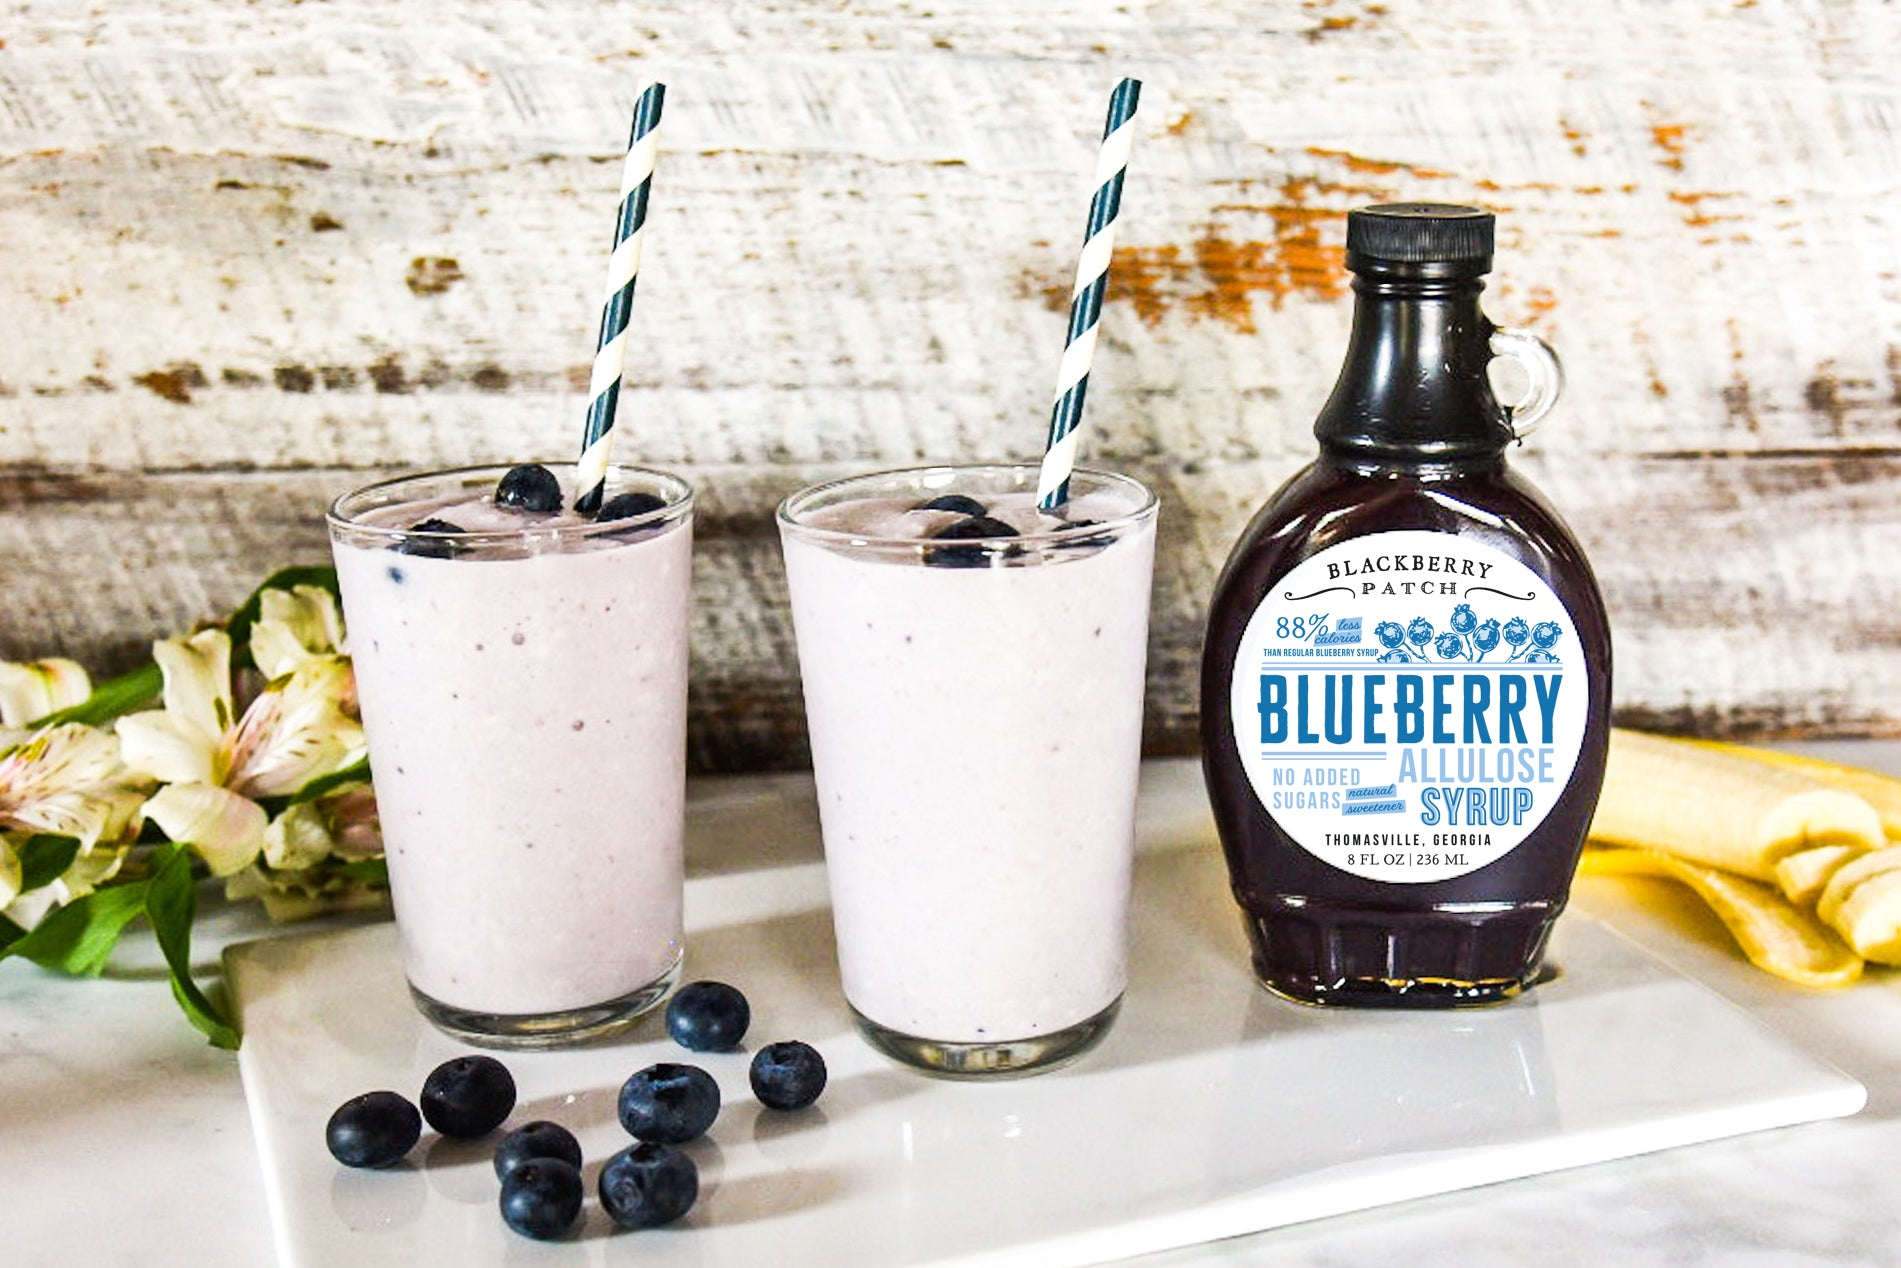 Recipe photo of Blueberry Banana Smoothie using Blackberry Patch Blueberry Allulose Syrup